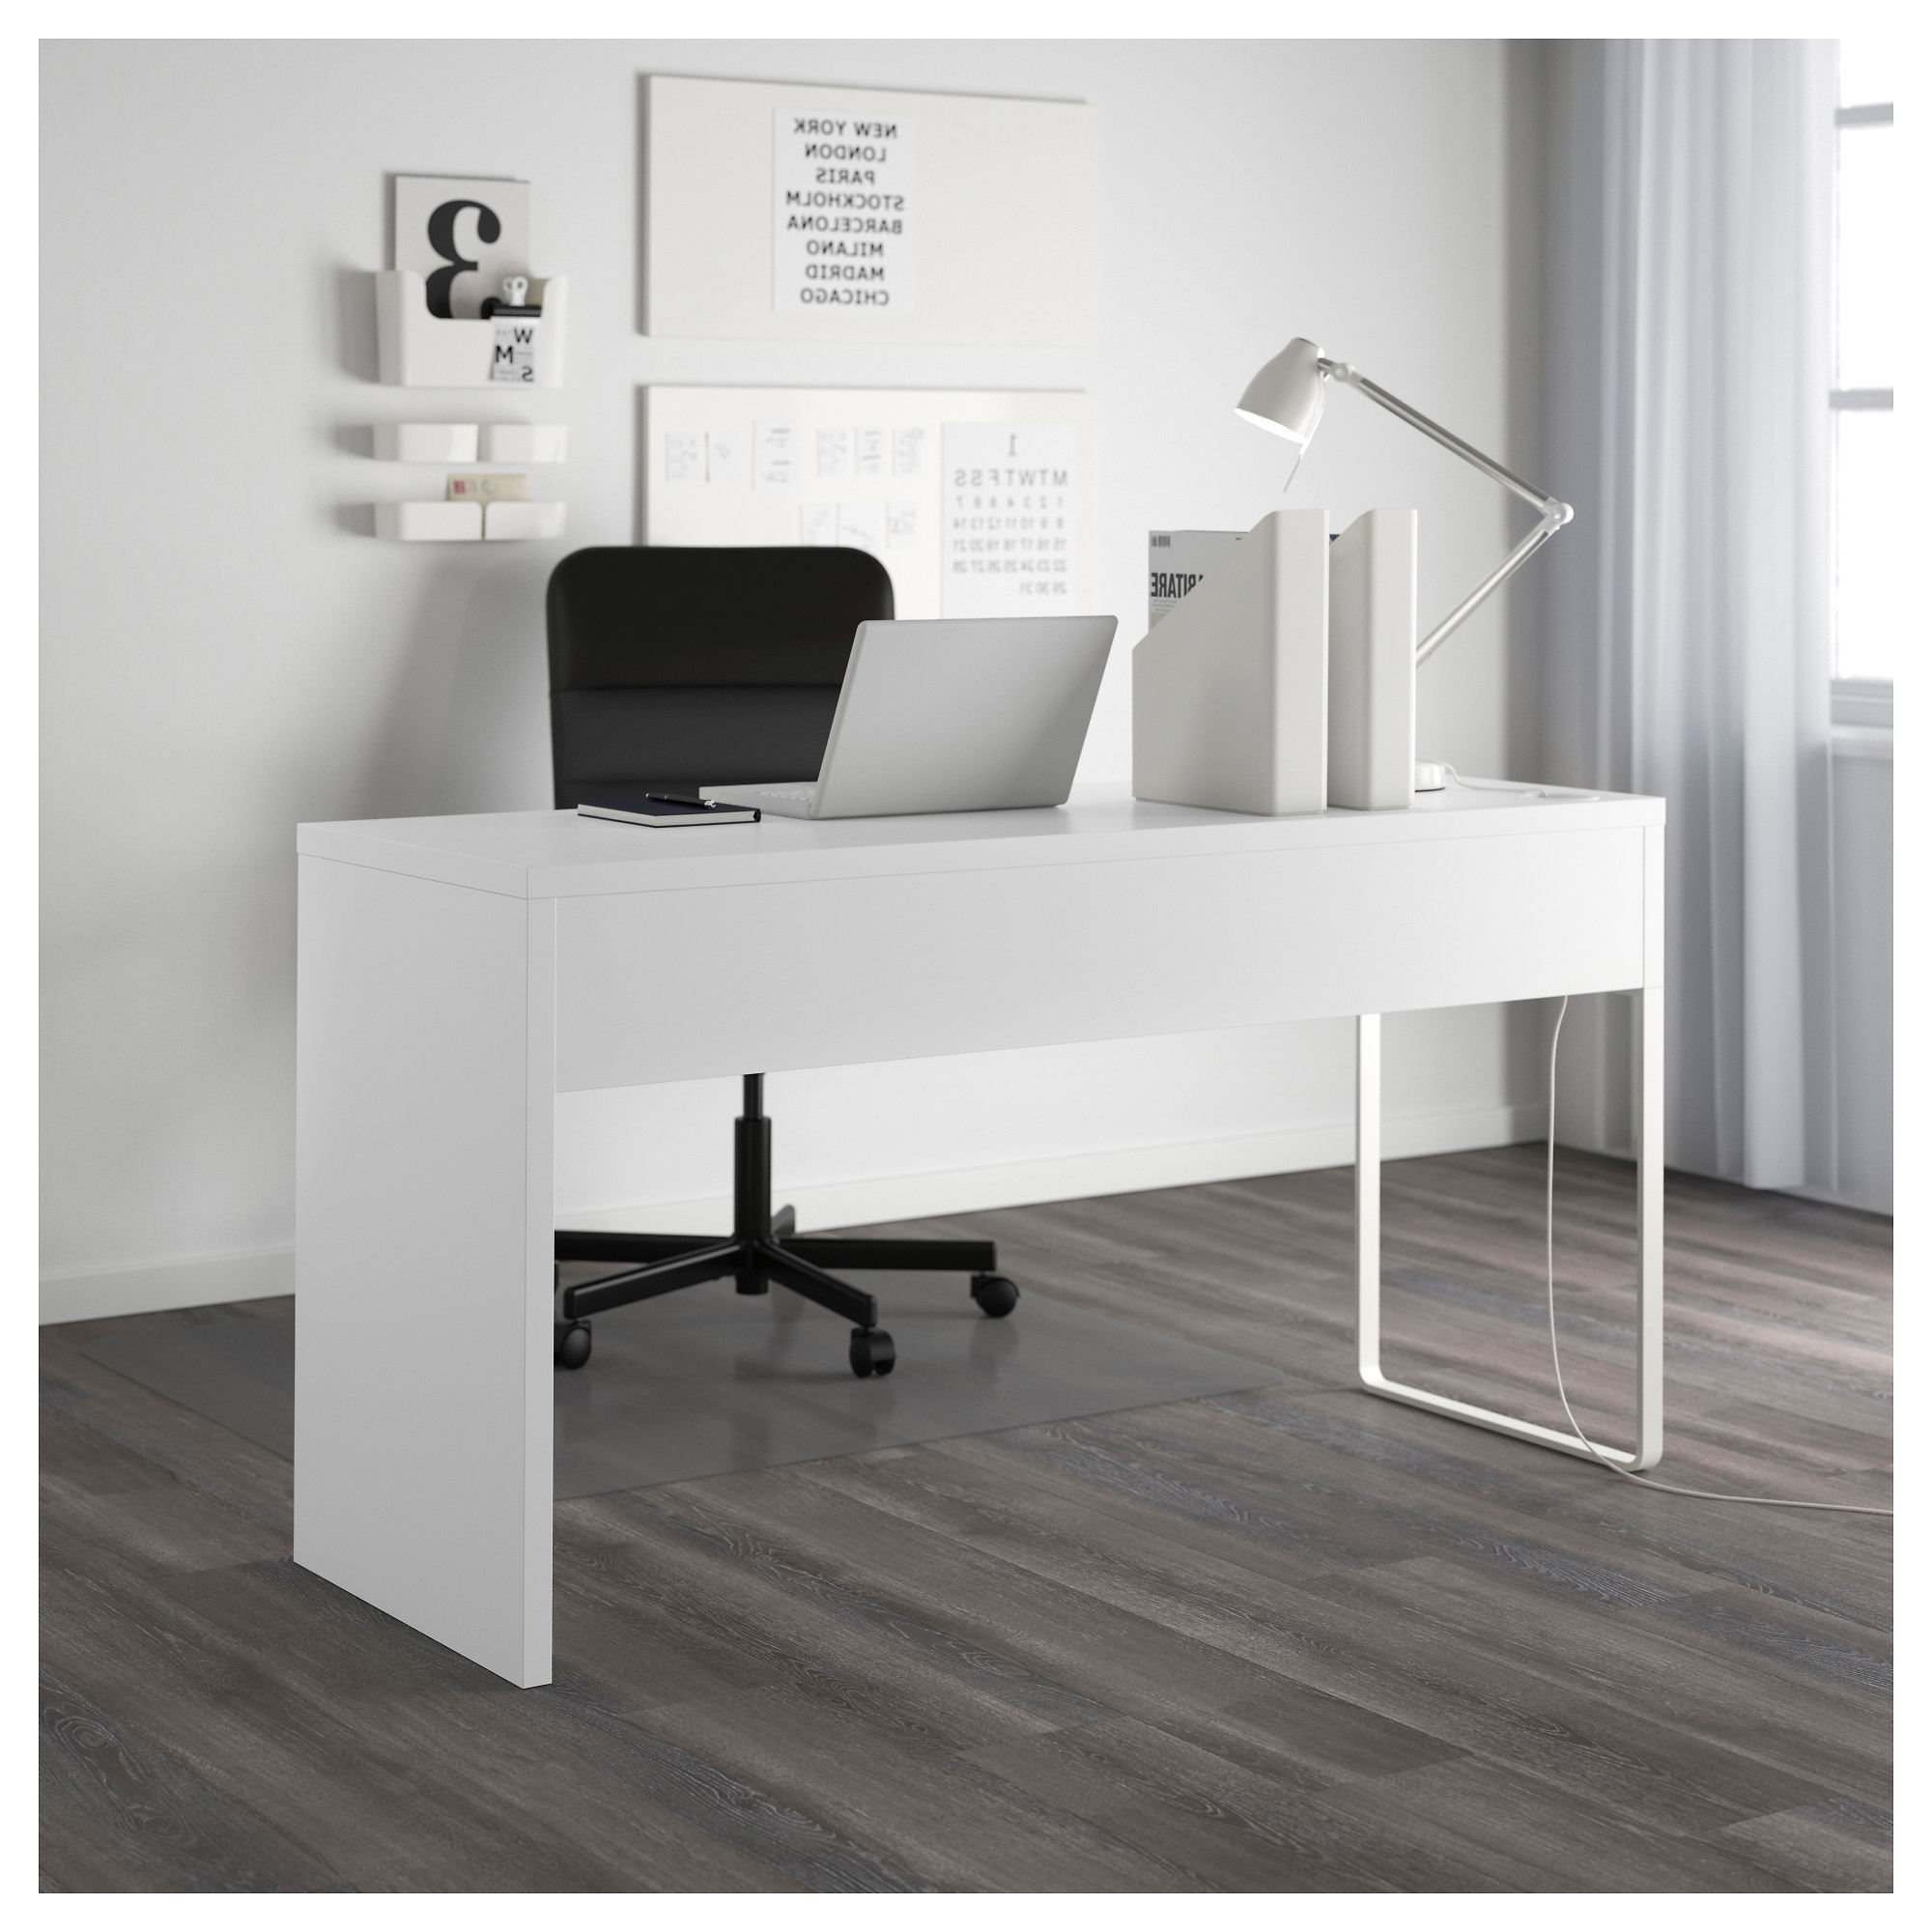 Most Up To Date Computer Desks In White Throughout Micke Desk – White – Ikea (Gallery 5 of 20)